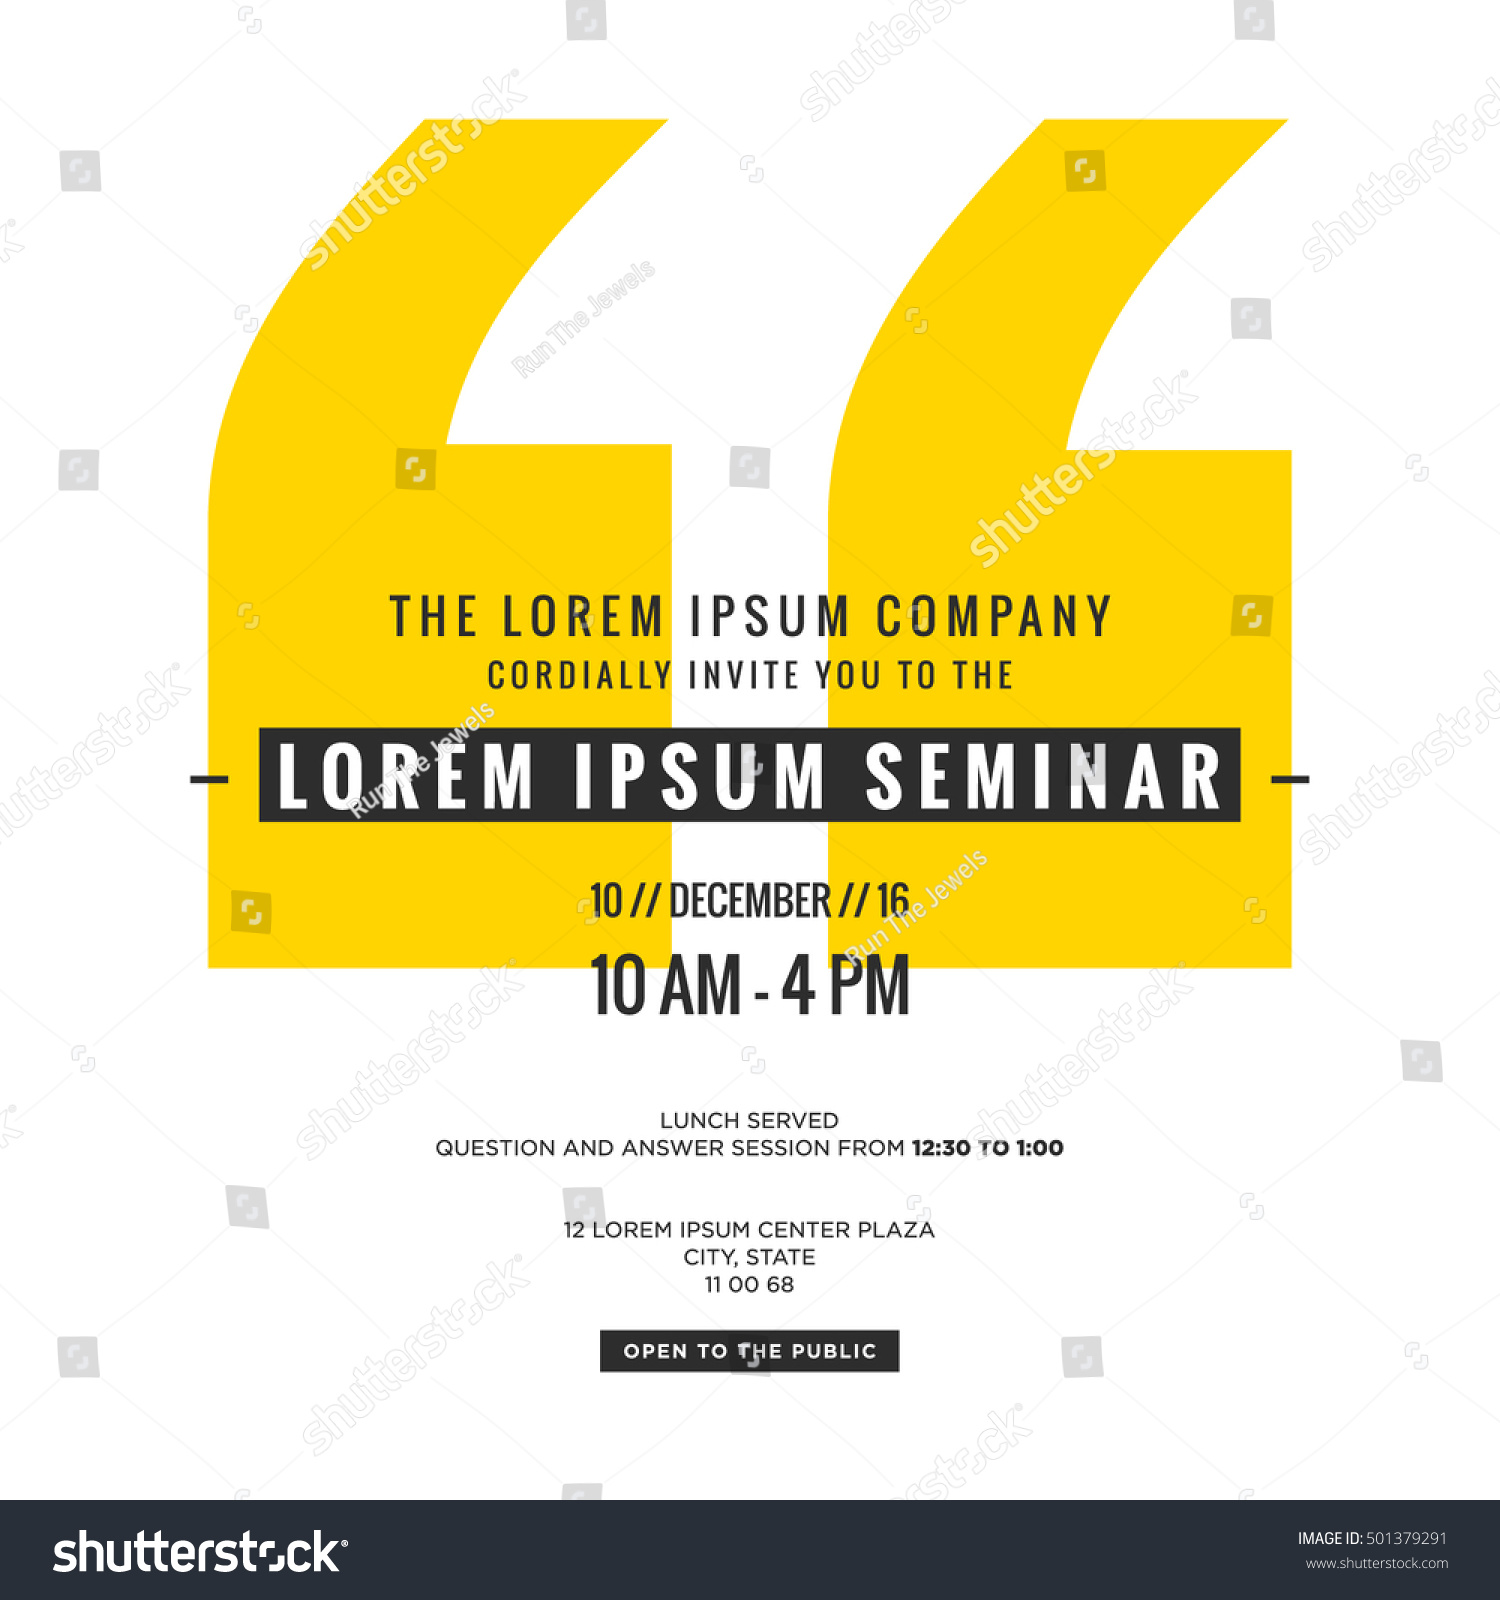 Business Seminar Invitation Design Template (With Time, Date And Venue  Details)